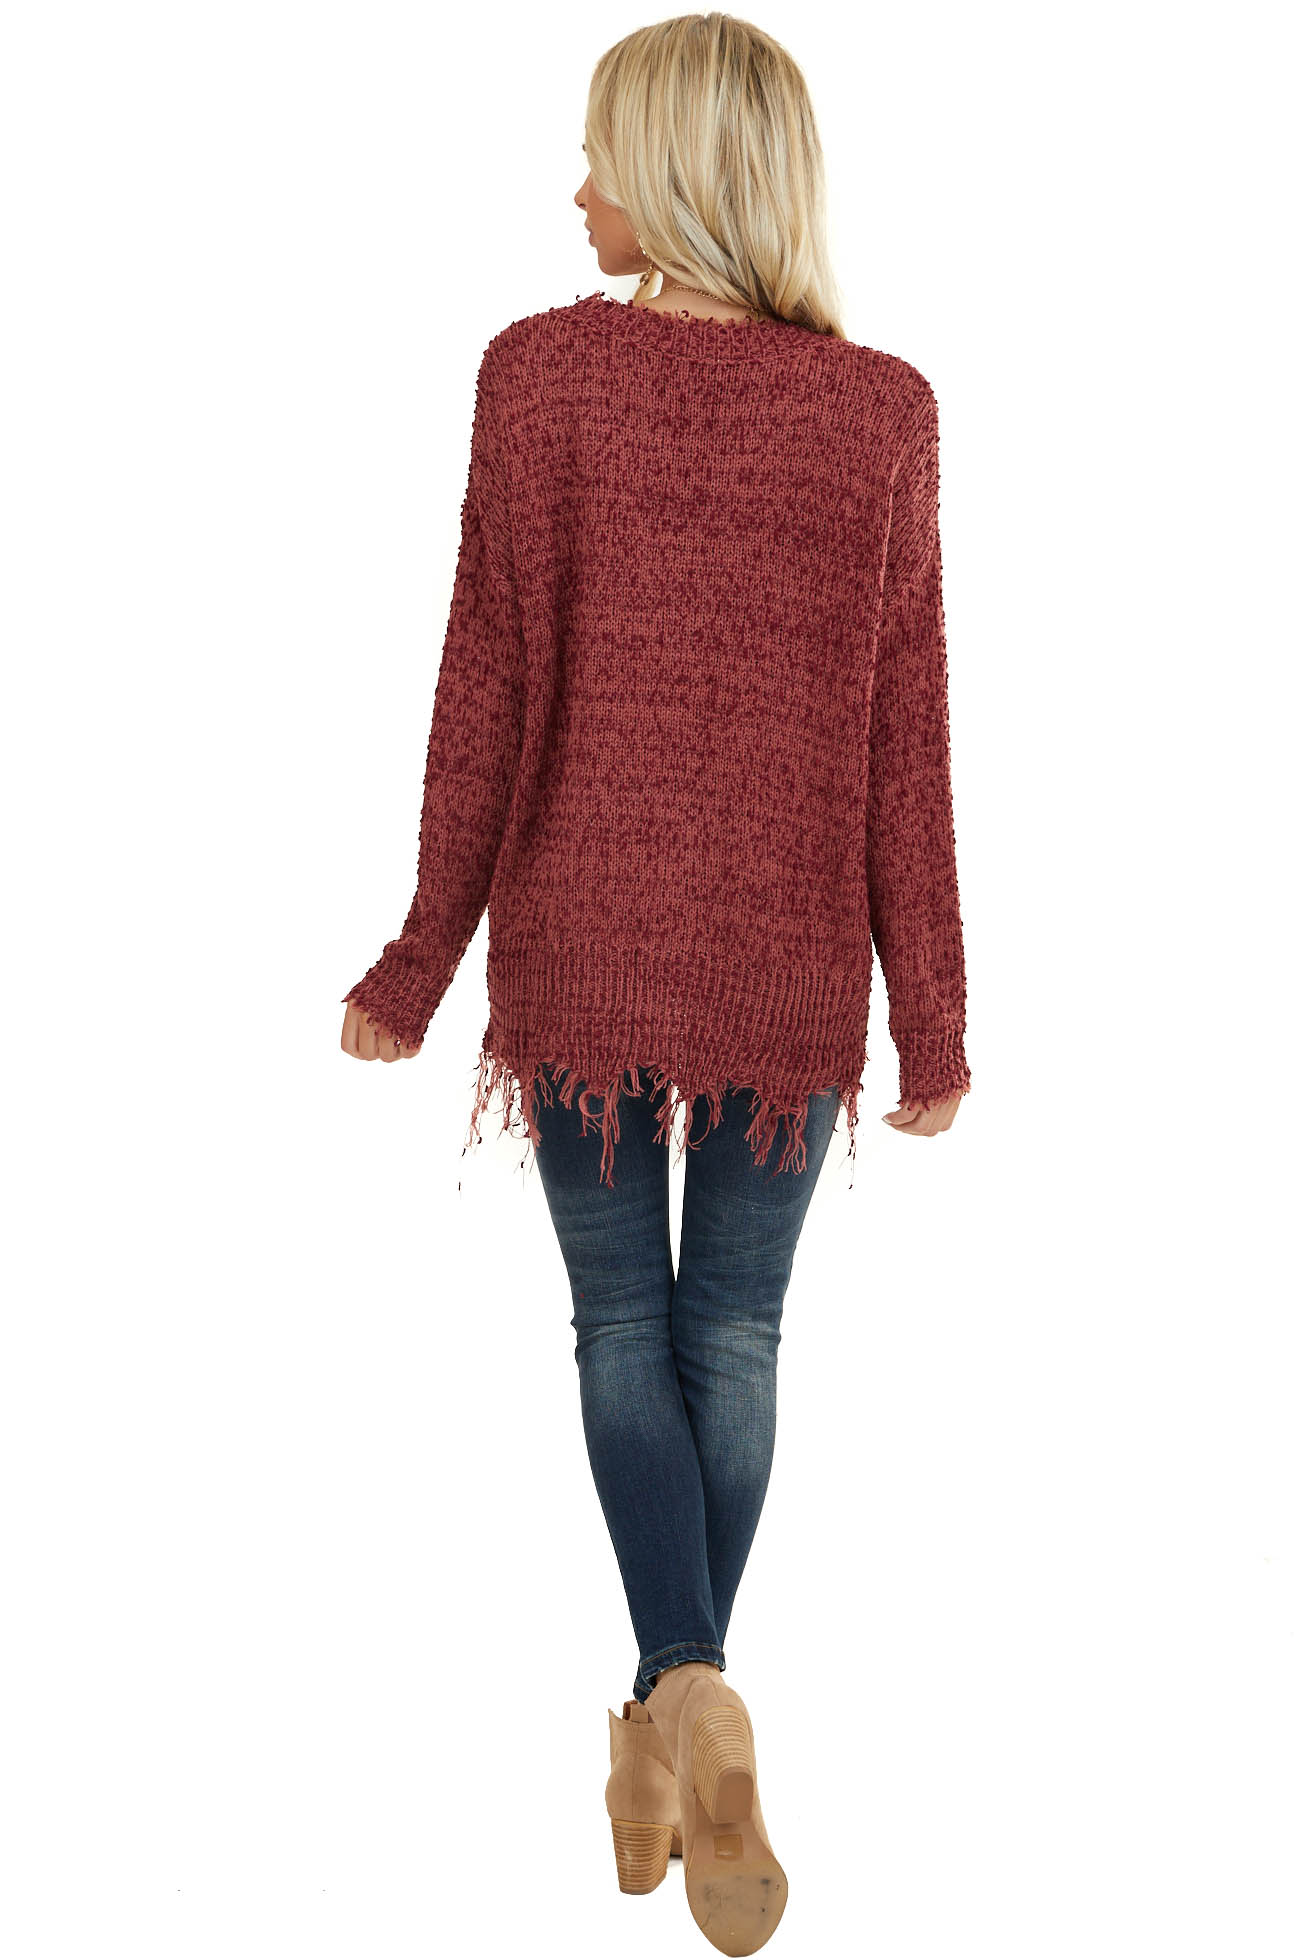 Plum V Neck Sweater with Frayed and Distressed Details